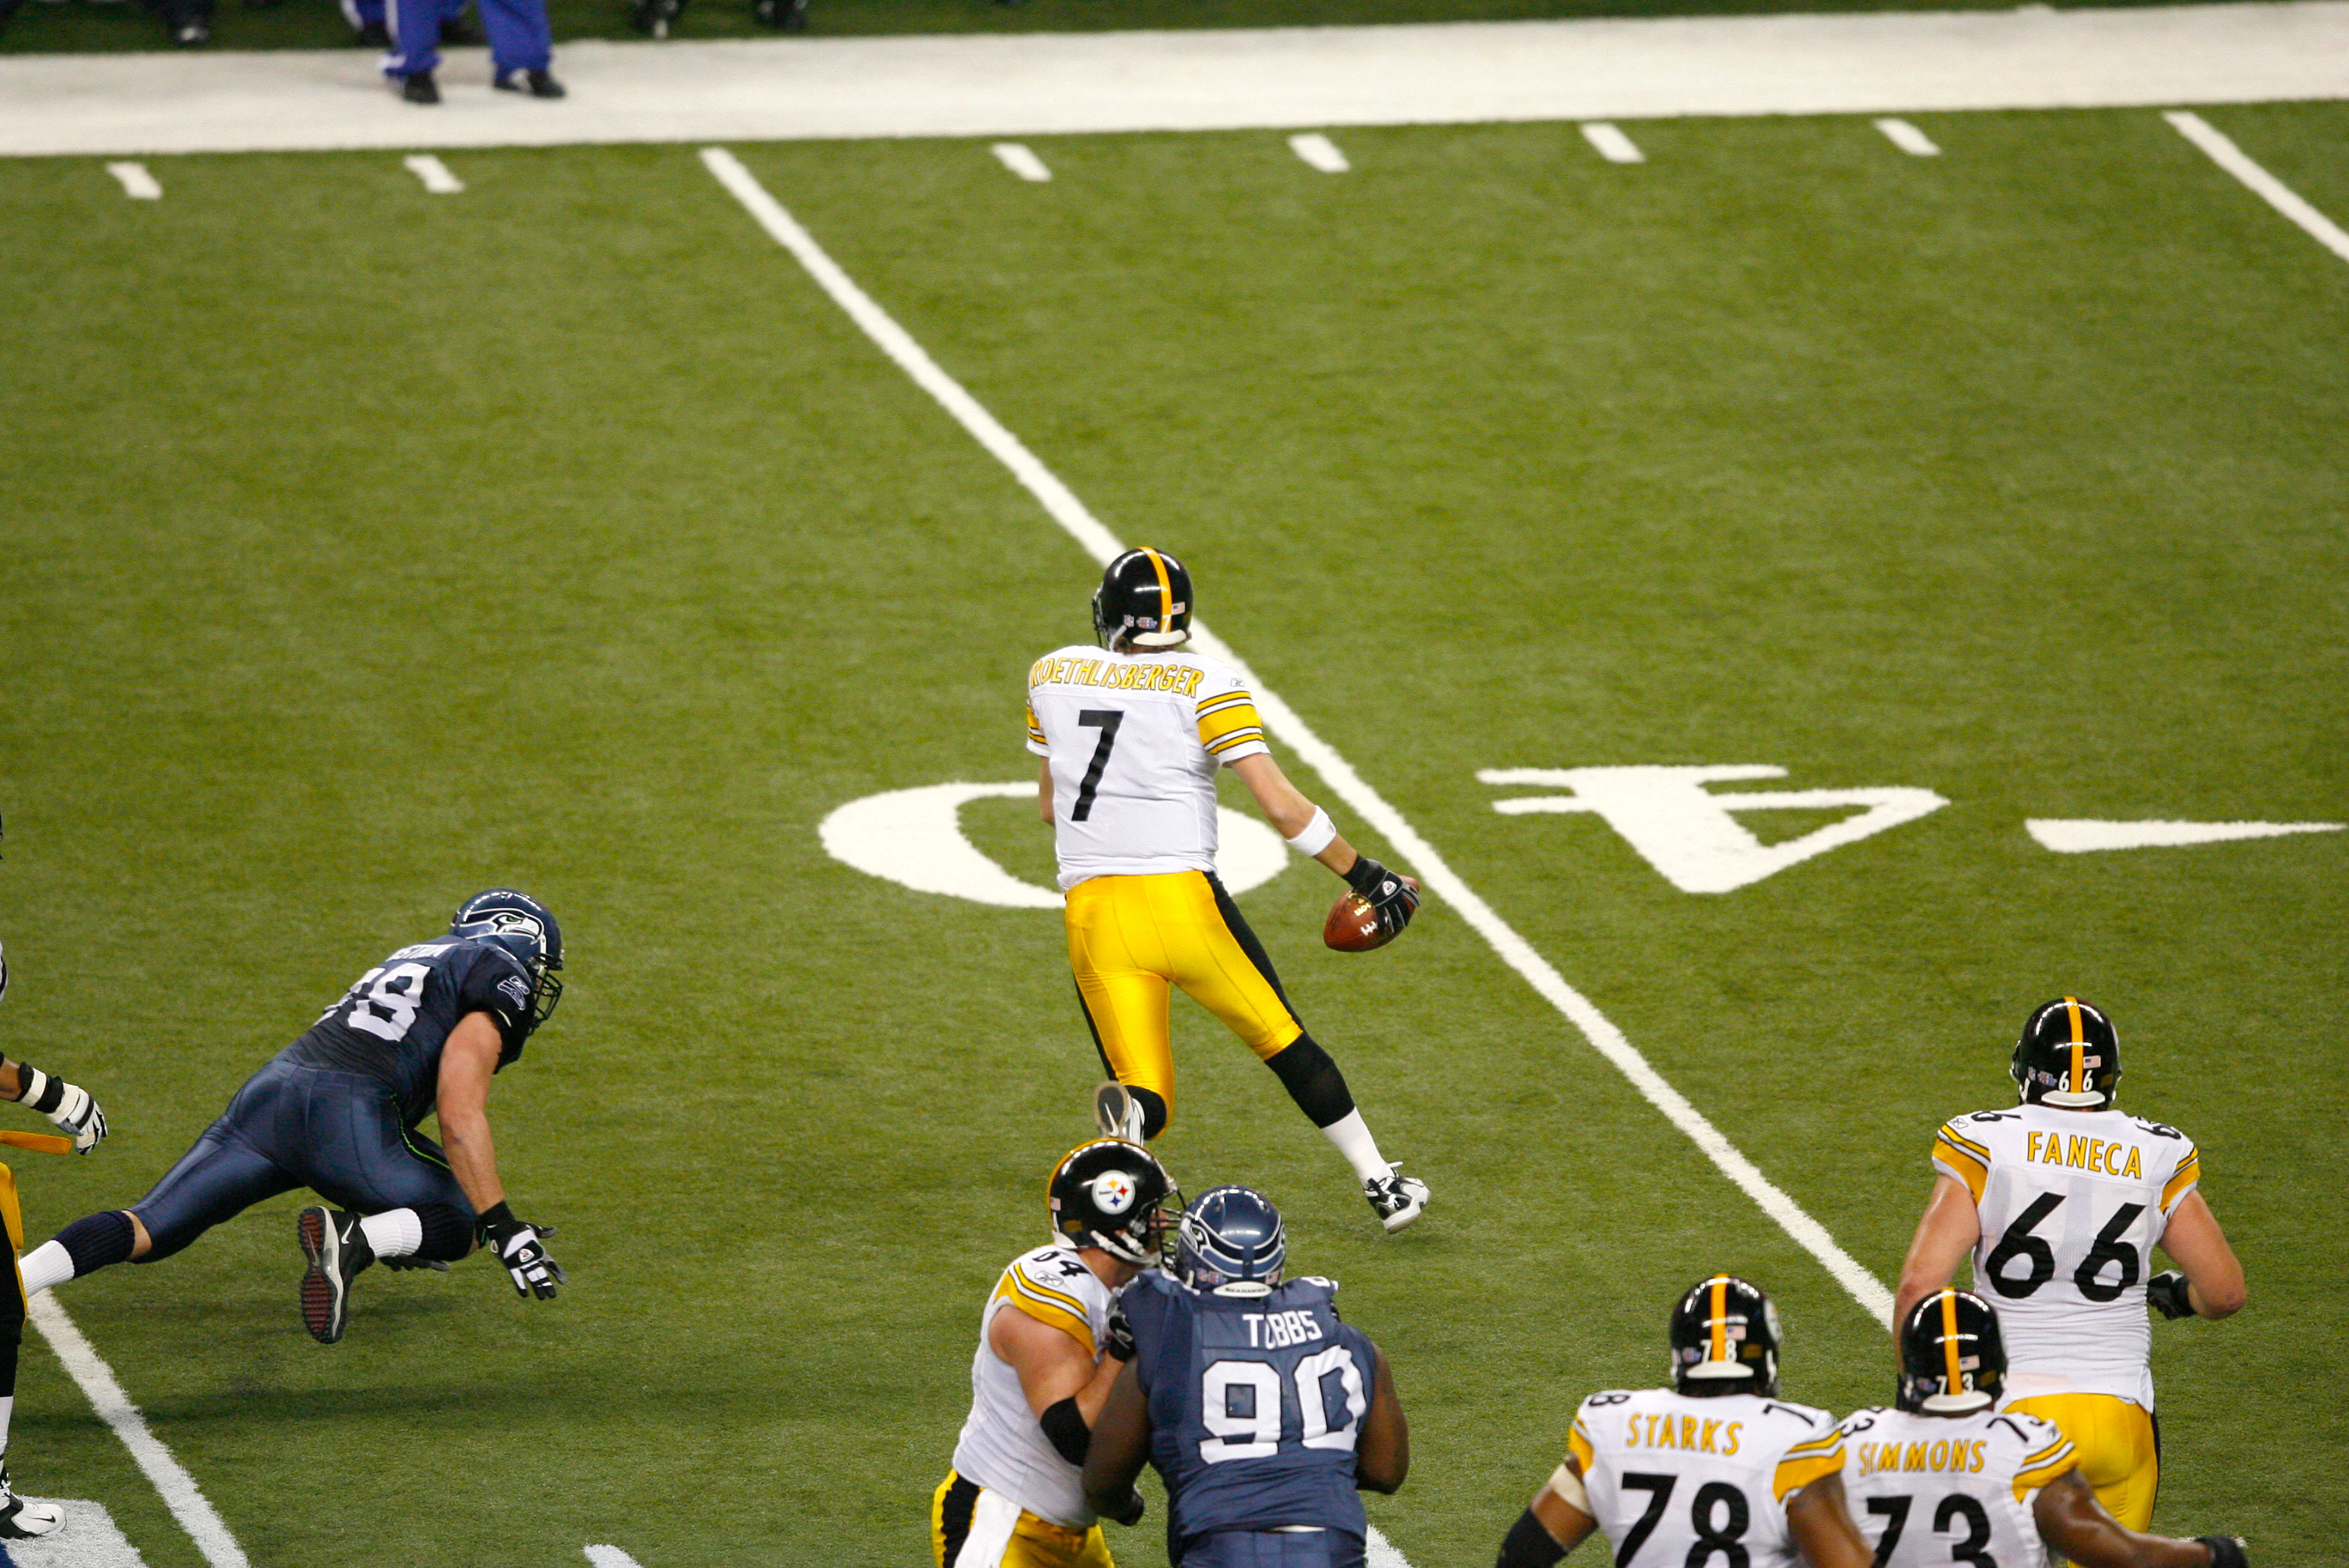 Big Ben finds open space toward the sideline.